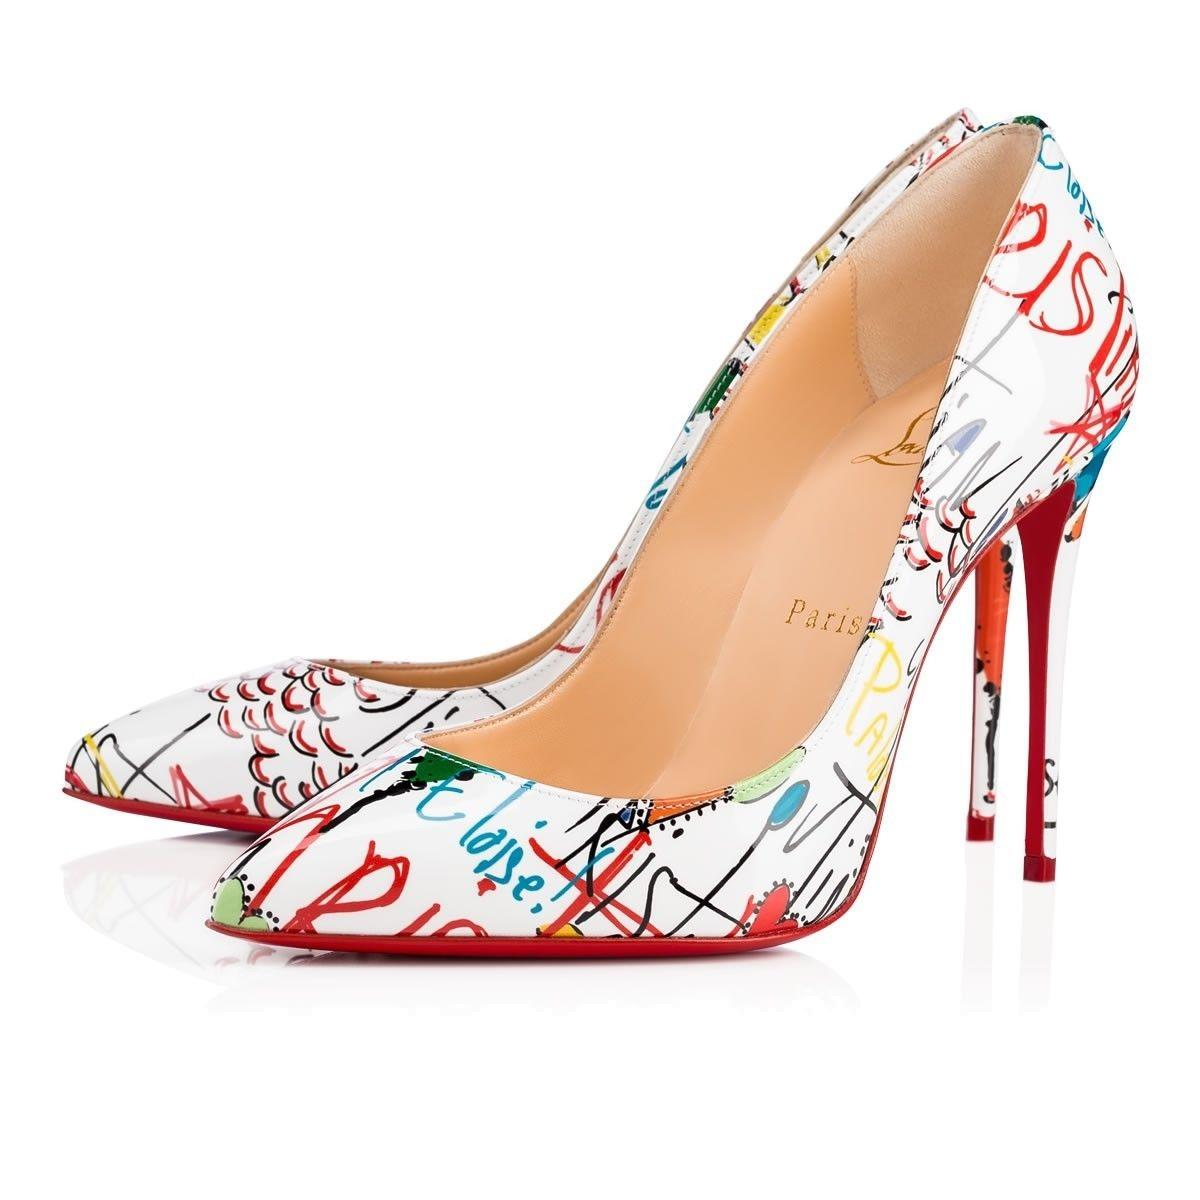 e67fd8d998d Christian Louboutin White Pigalle Follies 100 Red Loubitag Loubitag  Loubitag Graffiti Patent Leather Heel Pumps Size